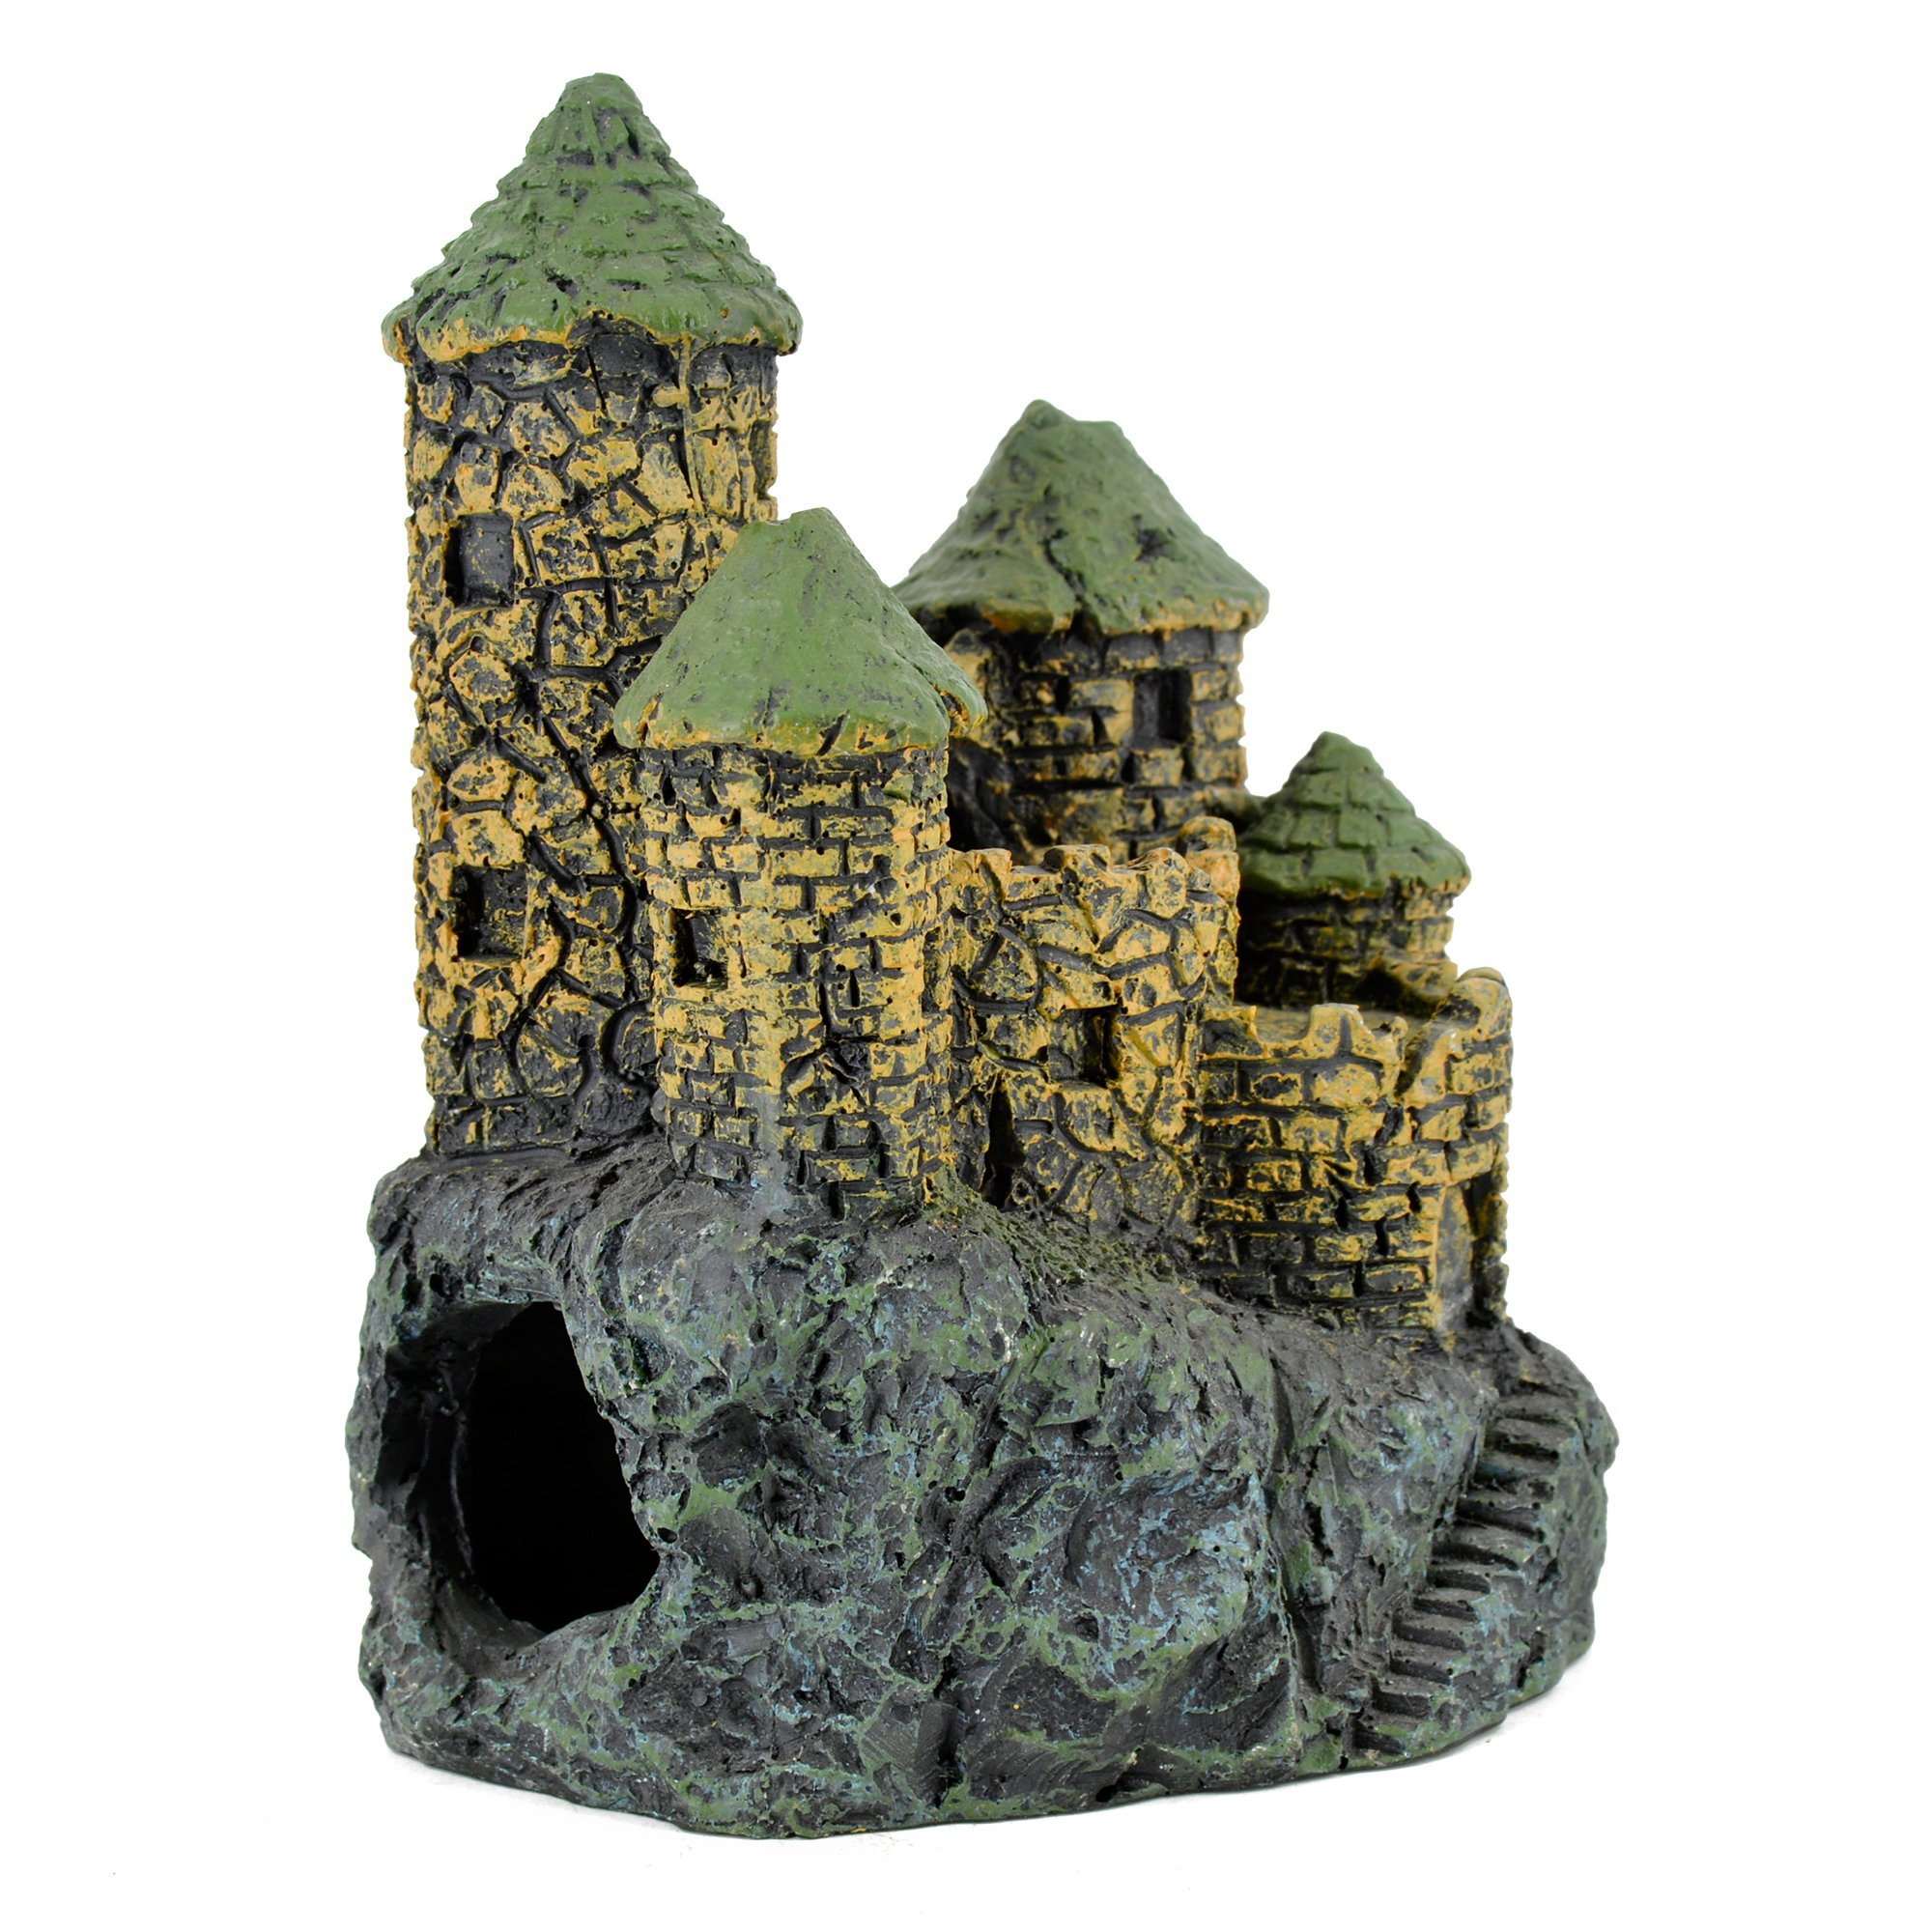 Hygger Aquarium Ornaments Fish Tank Decorations Castle Cave Resin, Durable Resin Material, 5.3 Inch, Safe for Fish